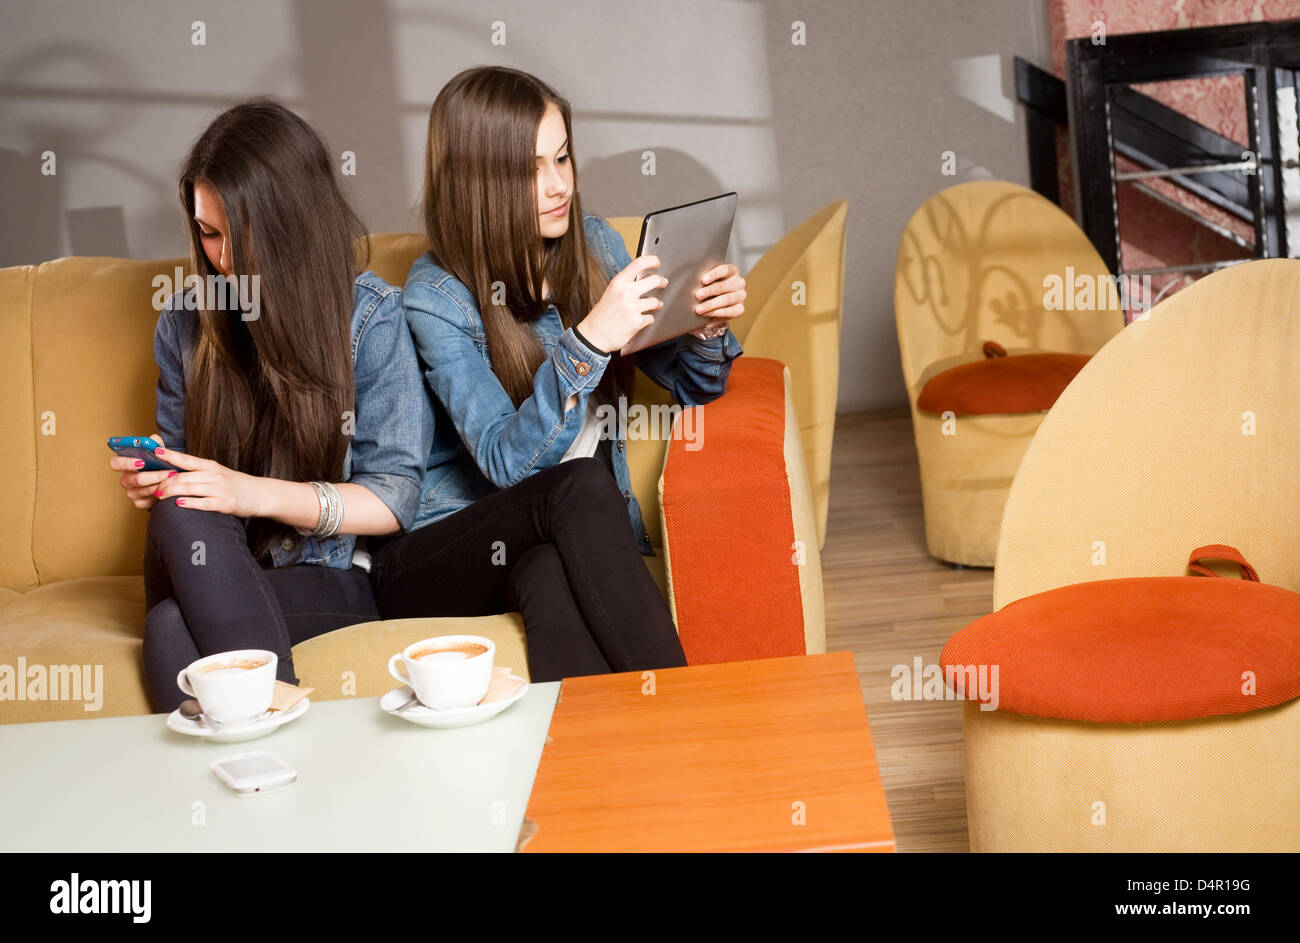 Two girls getting lost in and separated by their mobile devices. Stock Photo